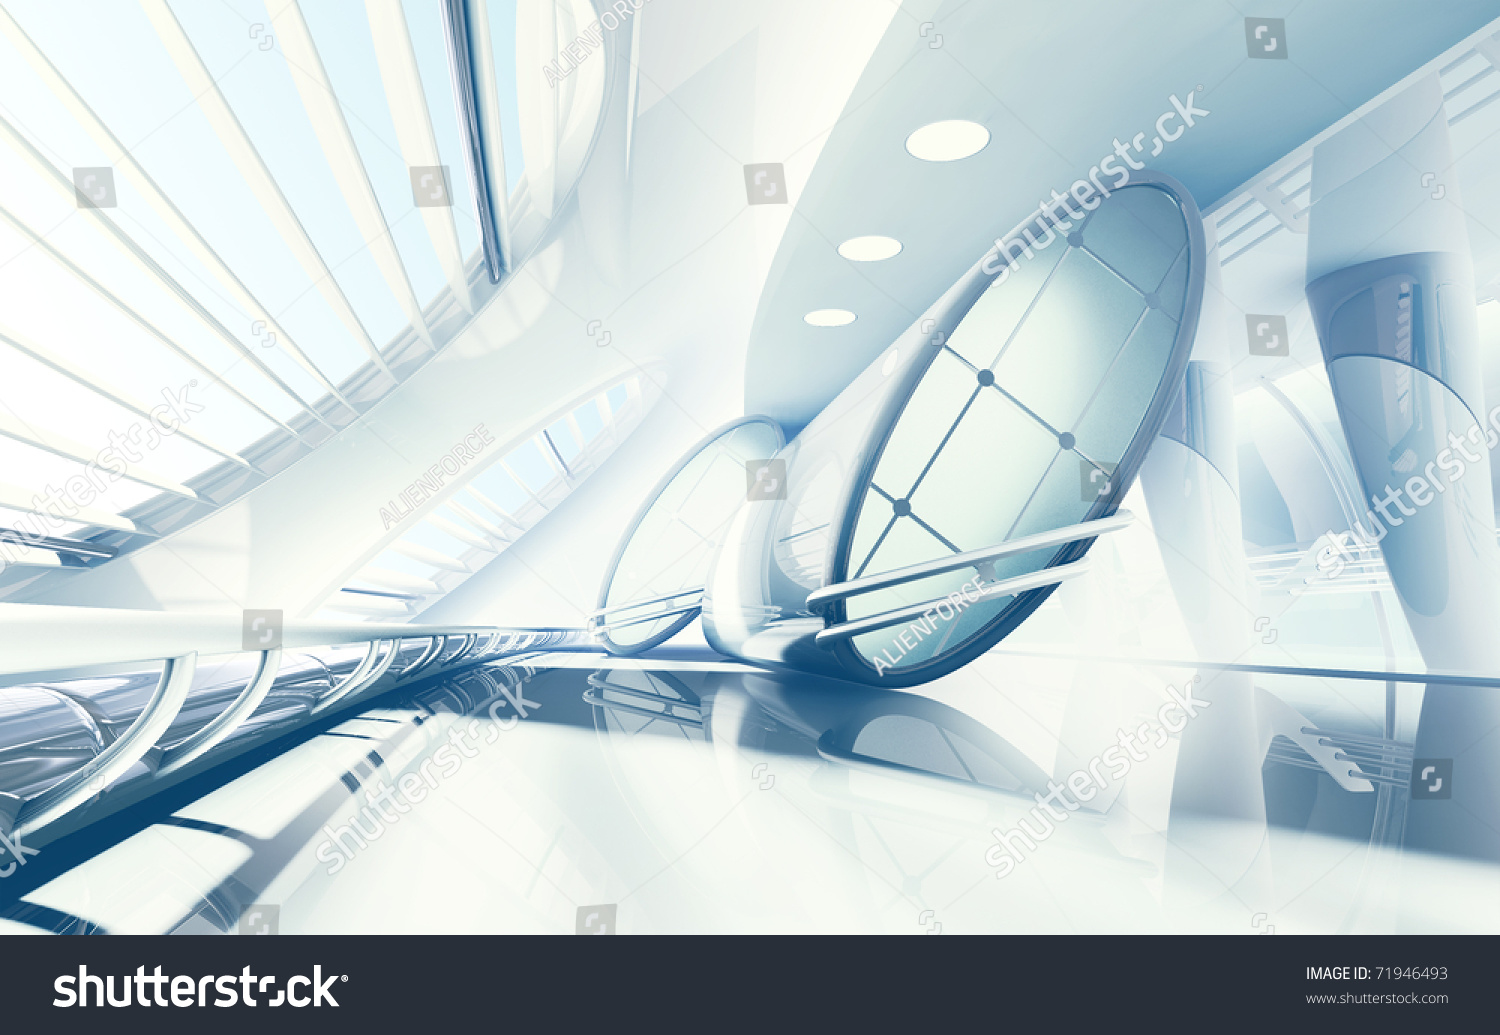 Futuristic Interior Stock Photo 71946493 Shutterstock